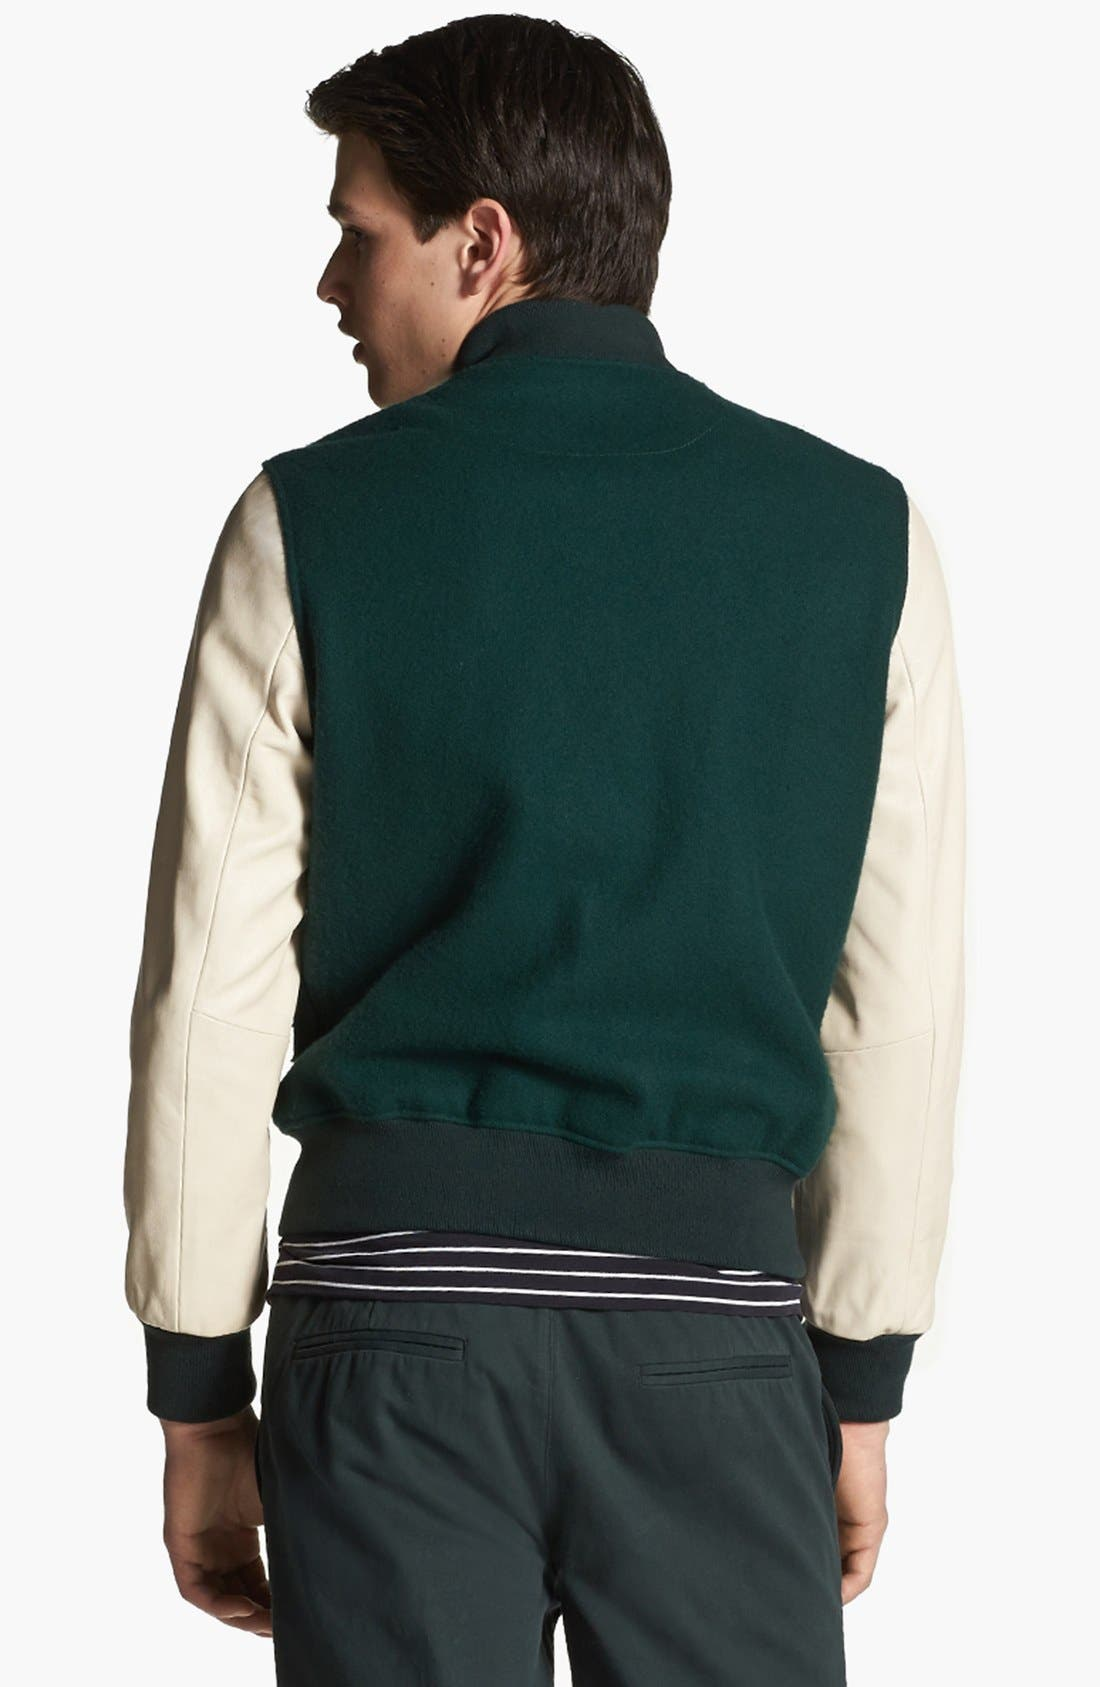 SHIPLEY & HALMOS, 'Ralphie' Varsity Jacket, Alternate thumbnail 3, color, 341